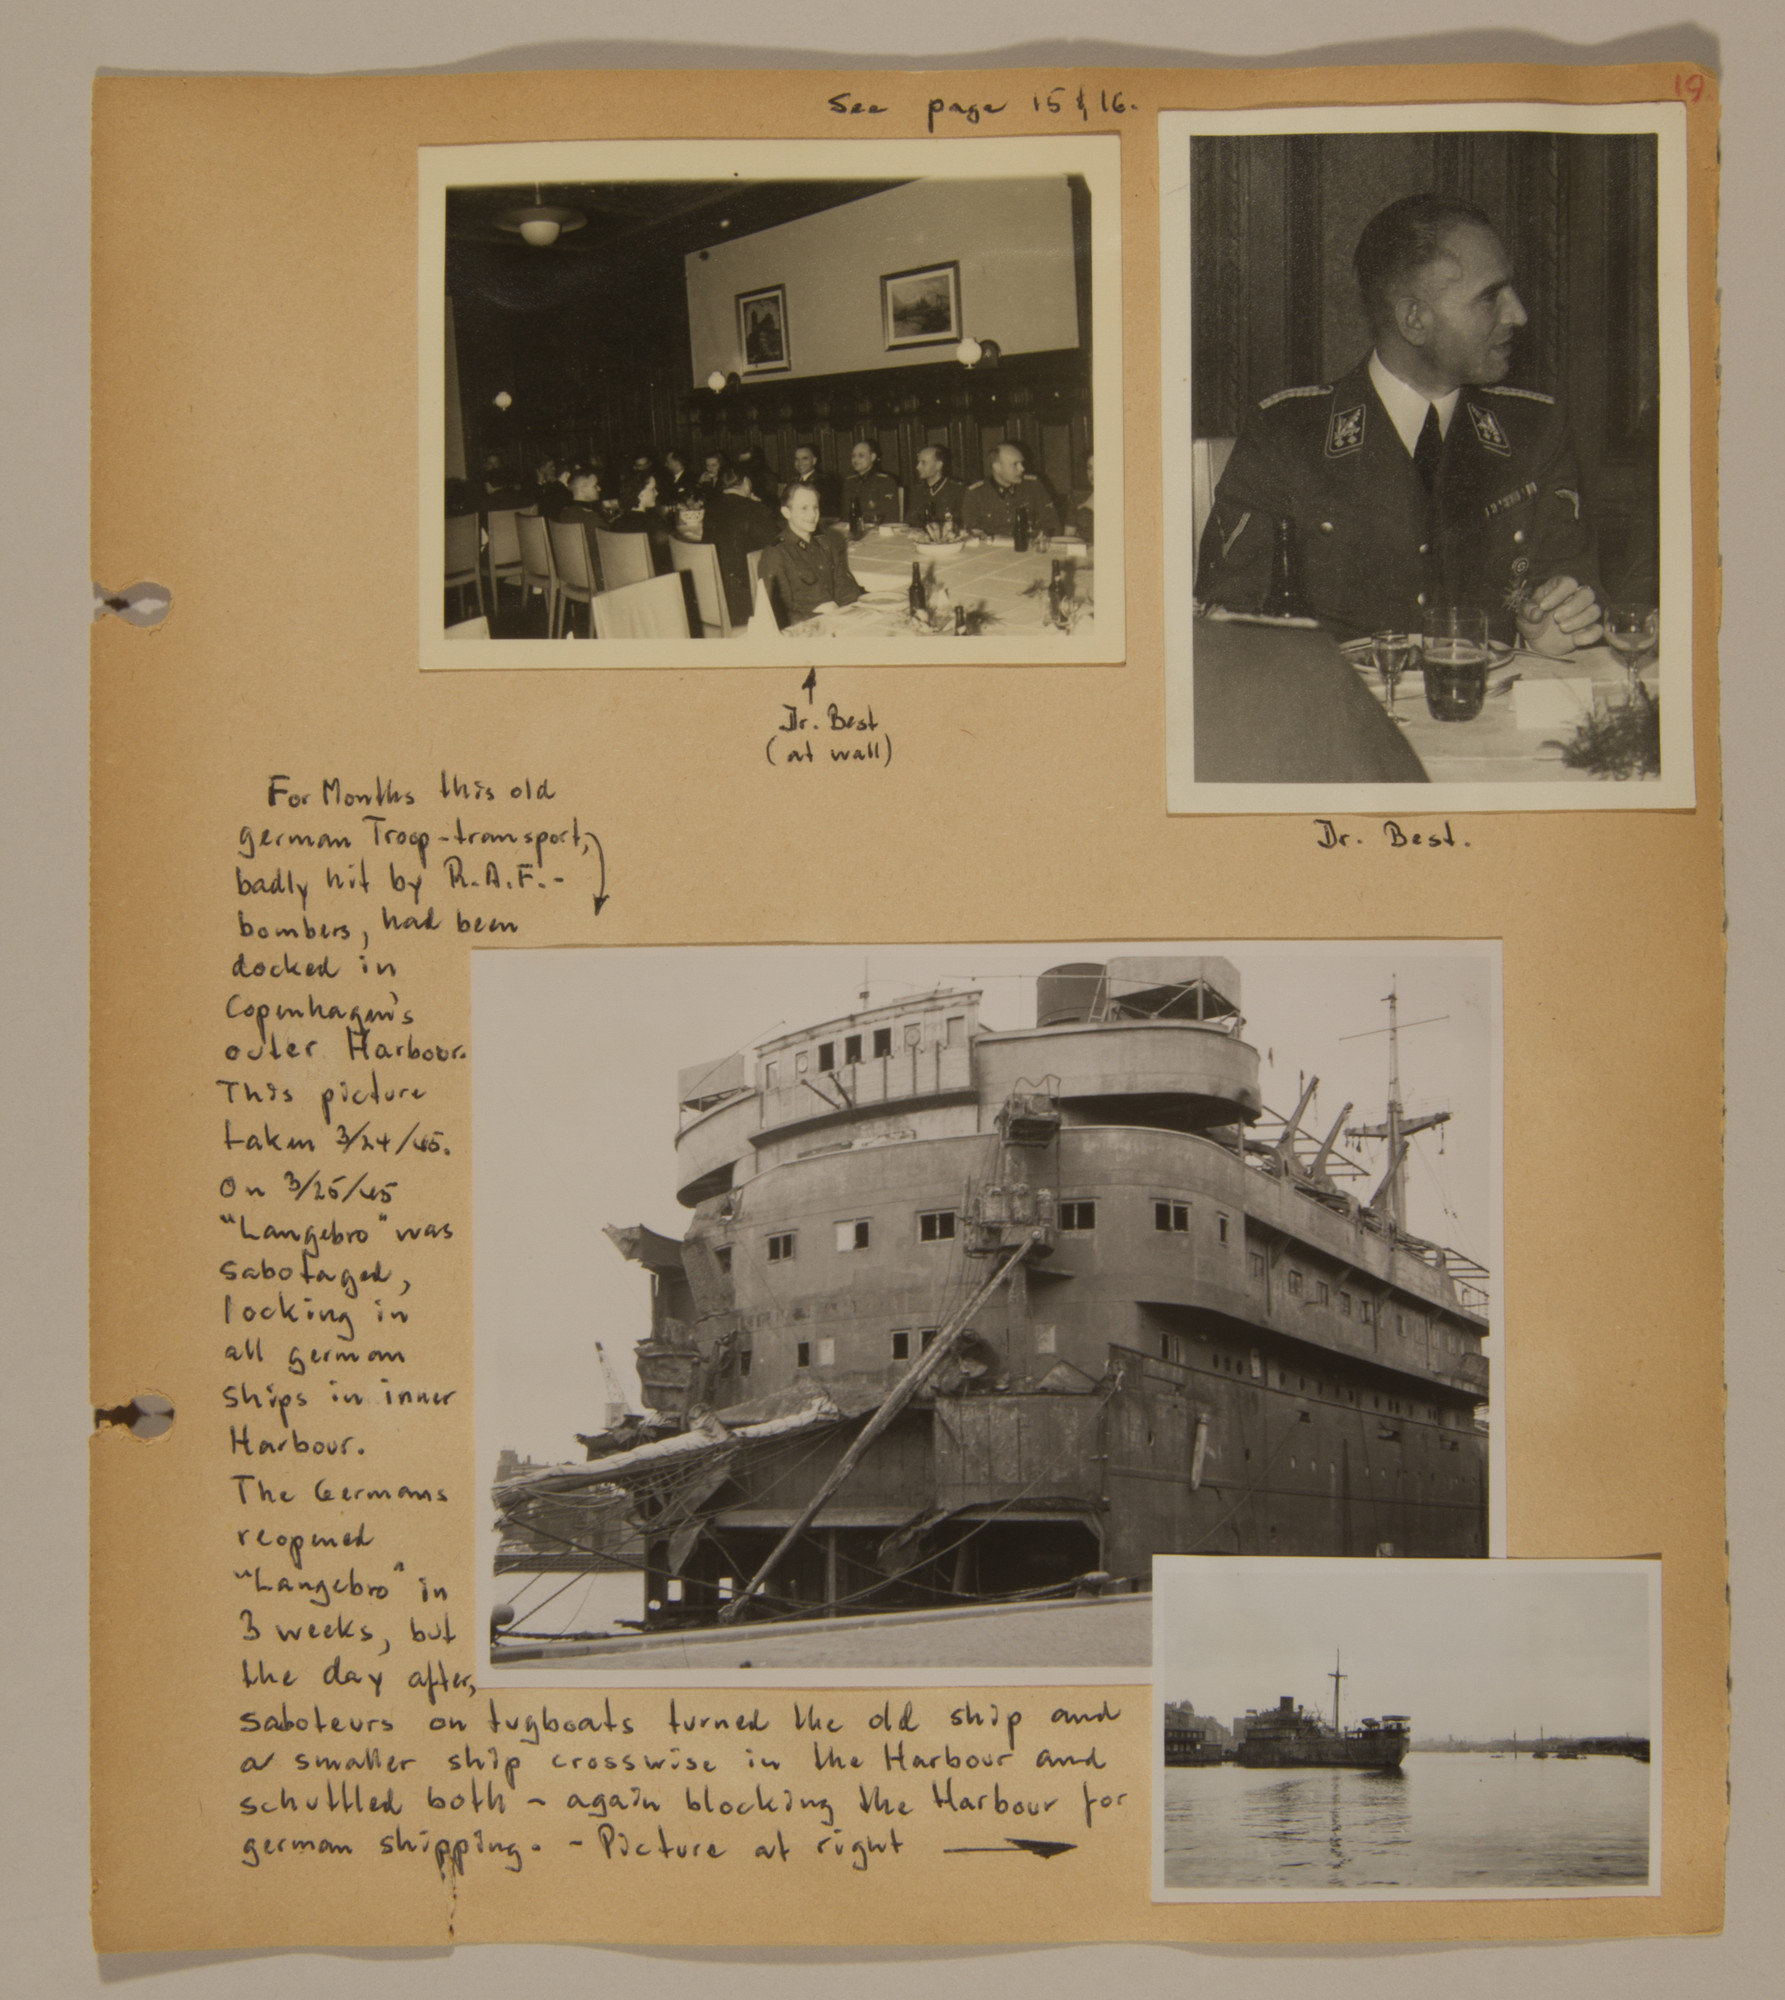 Page from volume three of a set of scrapbooks compiled by Bjorn Sibbern, a Danish policeman and resistance member, documenting the German occupation of Denmark.  This page contains photographs of Walter Best, the German civil administrator in Denmark, as well as photos of a damaged German troop transport, taken by Bjorn Sibbern while using a forged press card with a false identity.